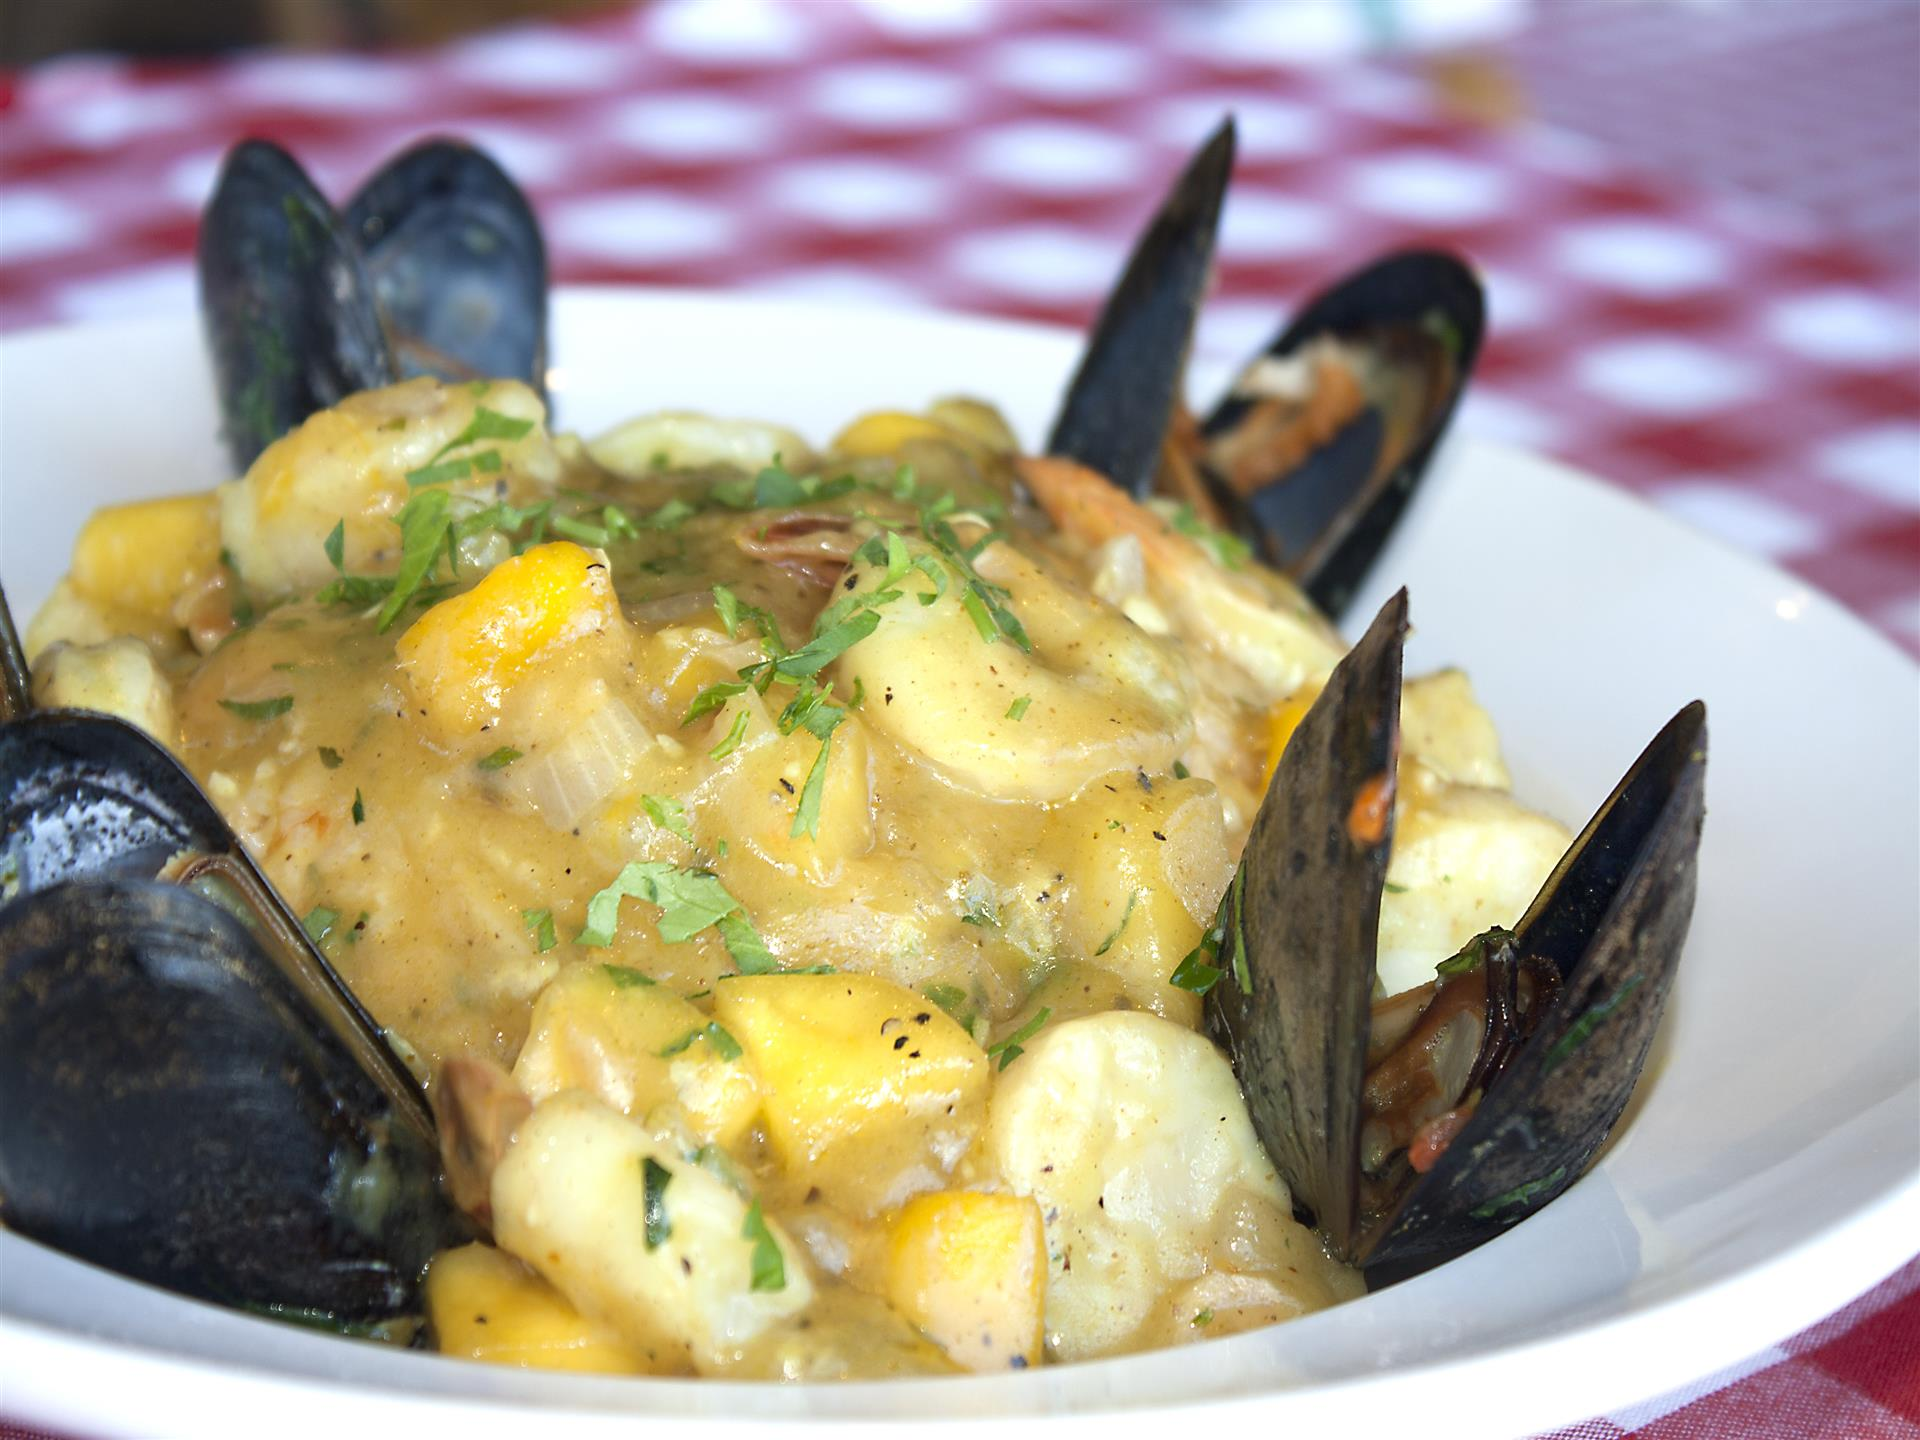 Seafood dish with mussels